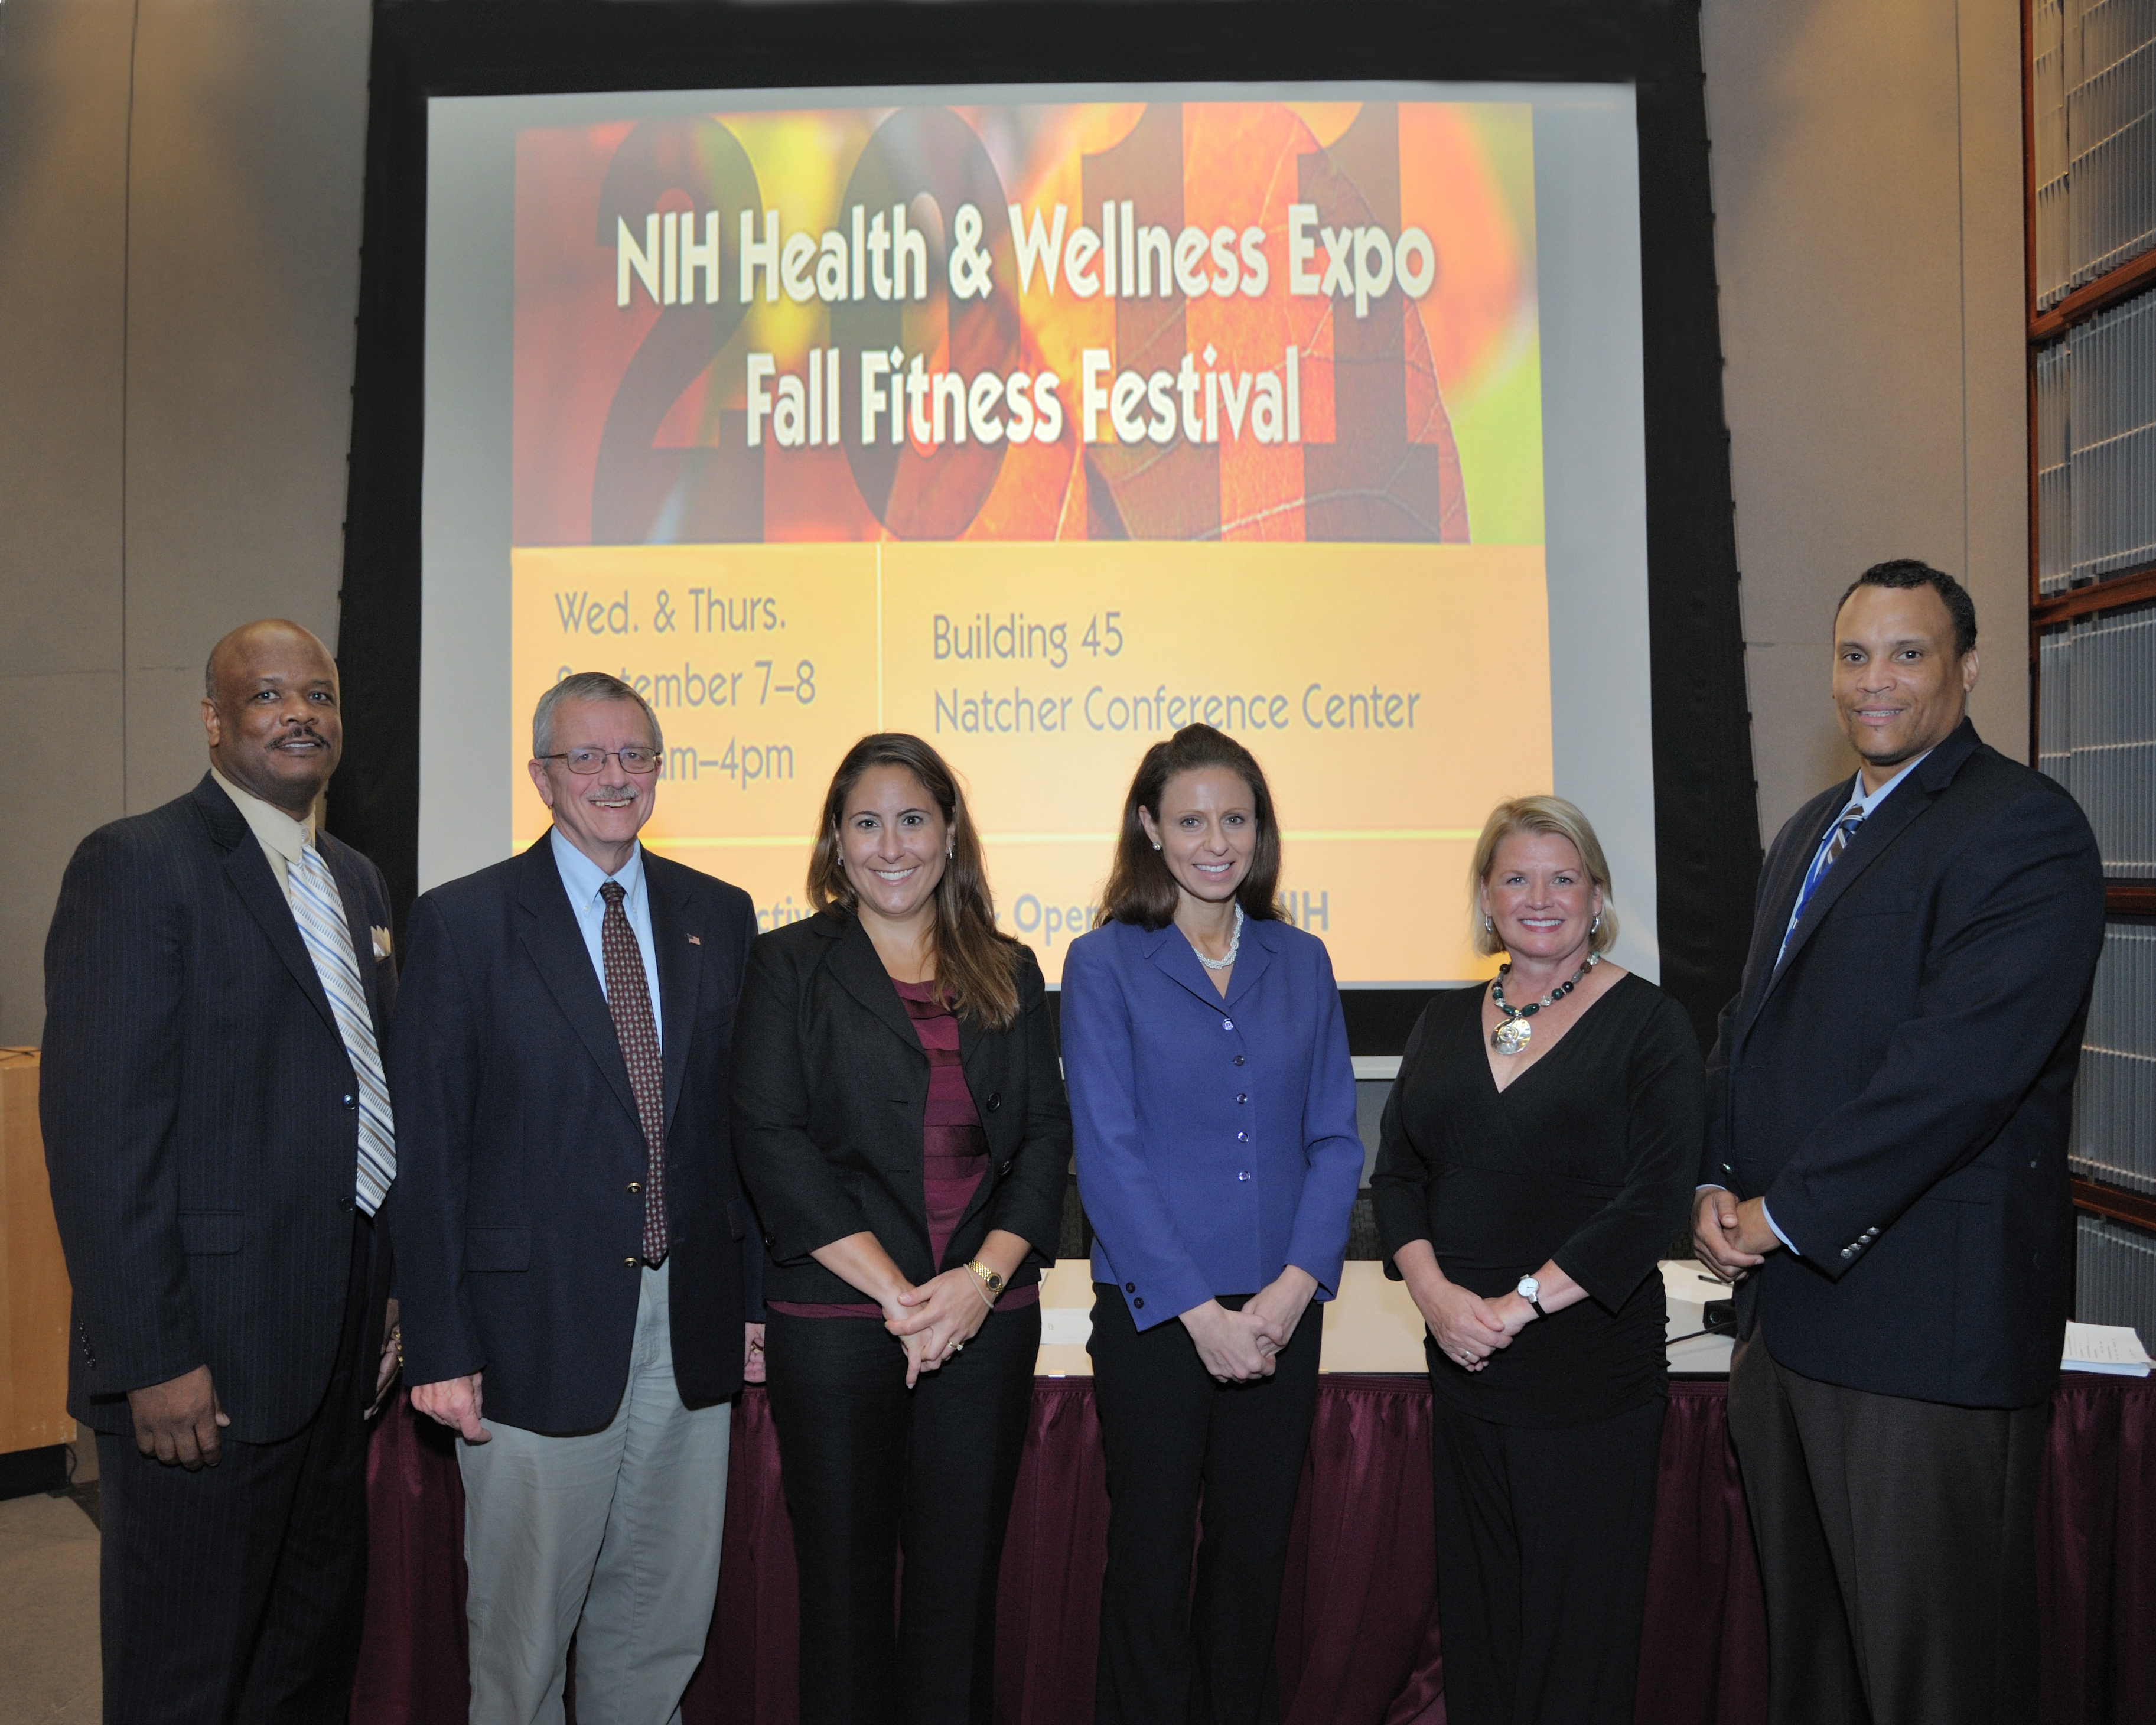 Health and Wellness Expo Expert Panel Group